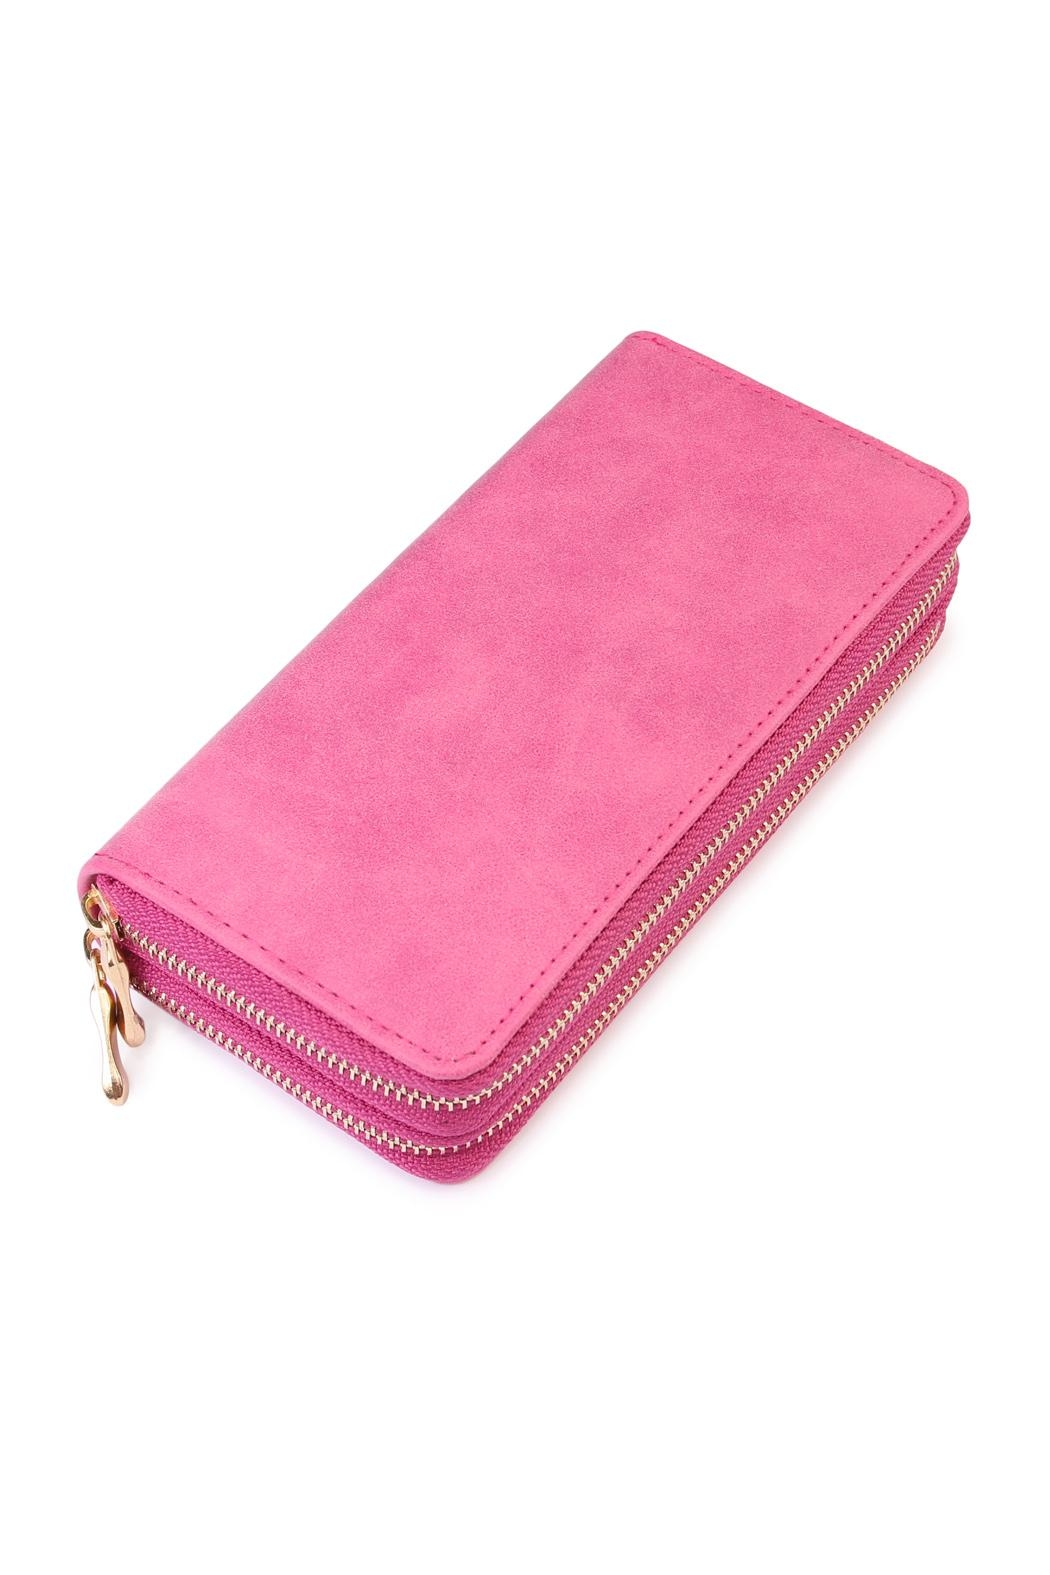 Riah Fashion Stylish Pink Wallet - Main Image